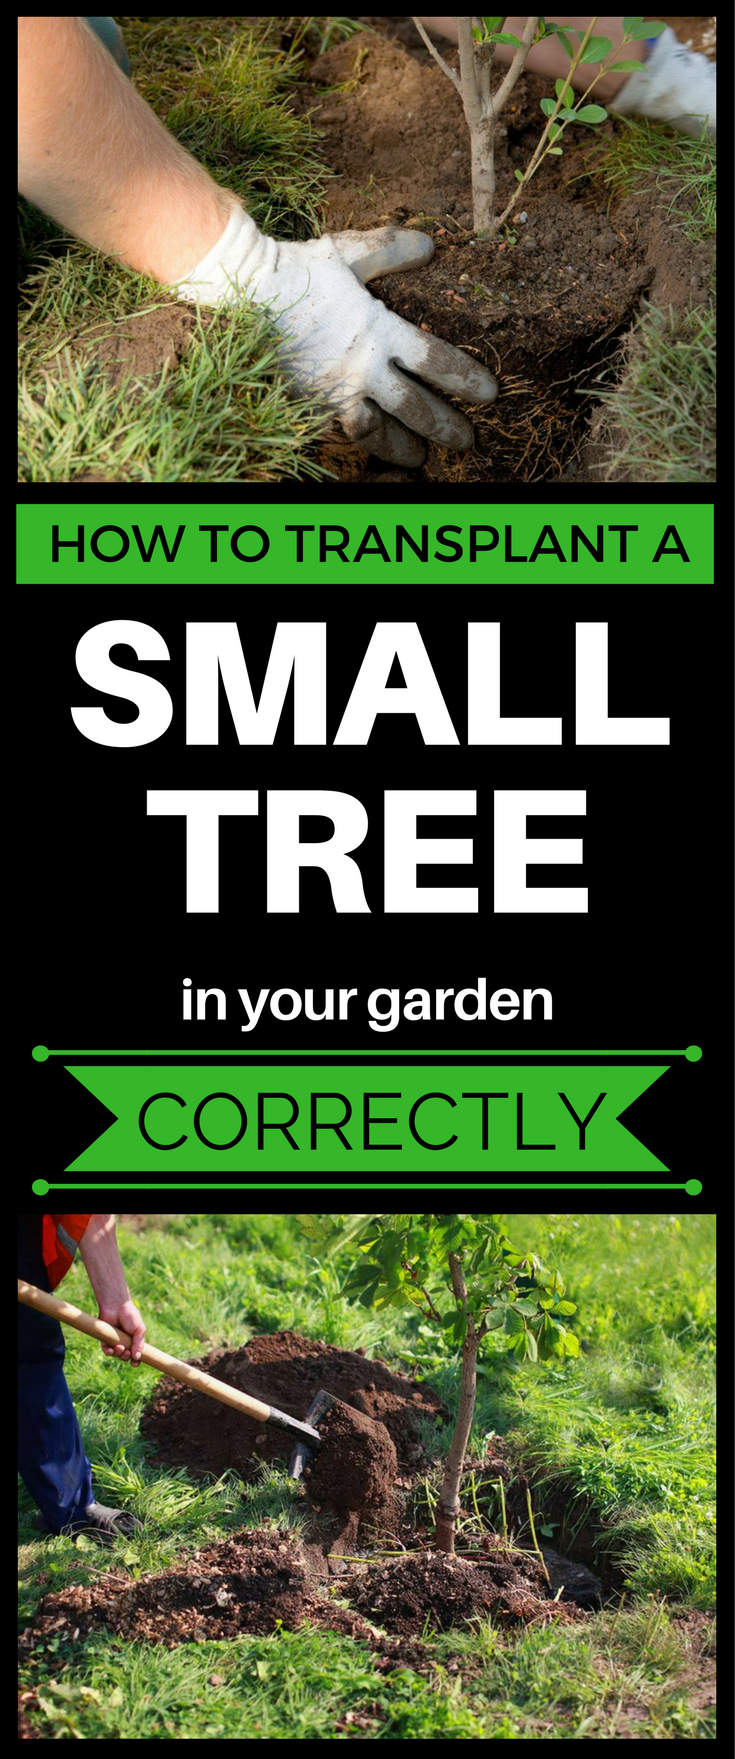 How To Transplant A Small Tree In Your